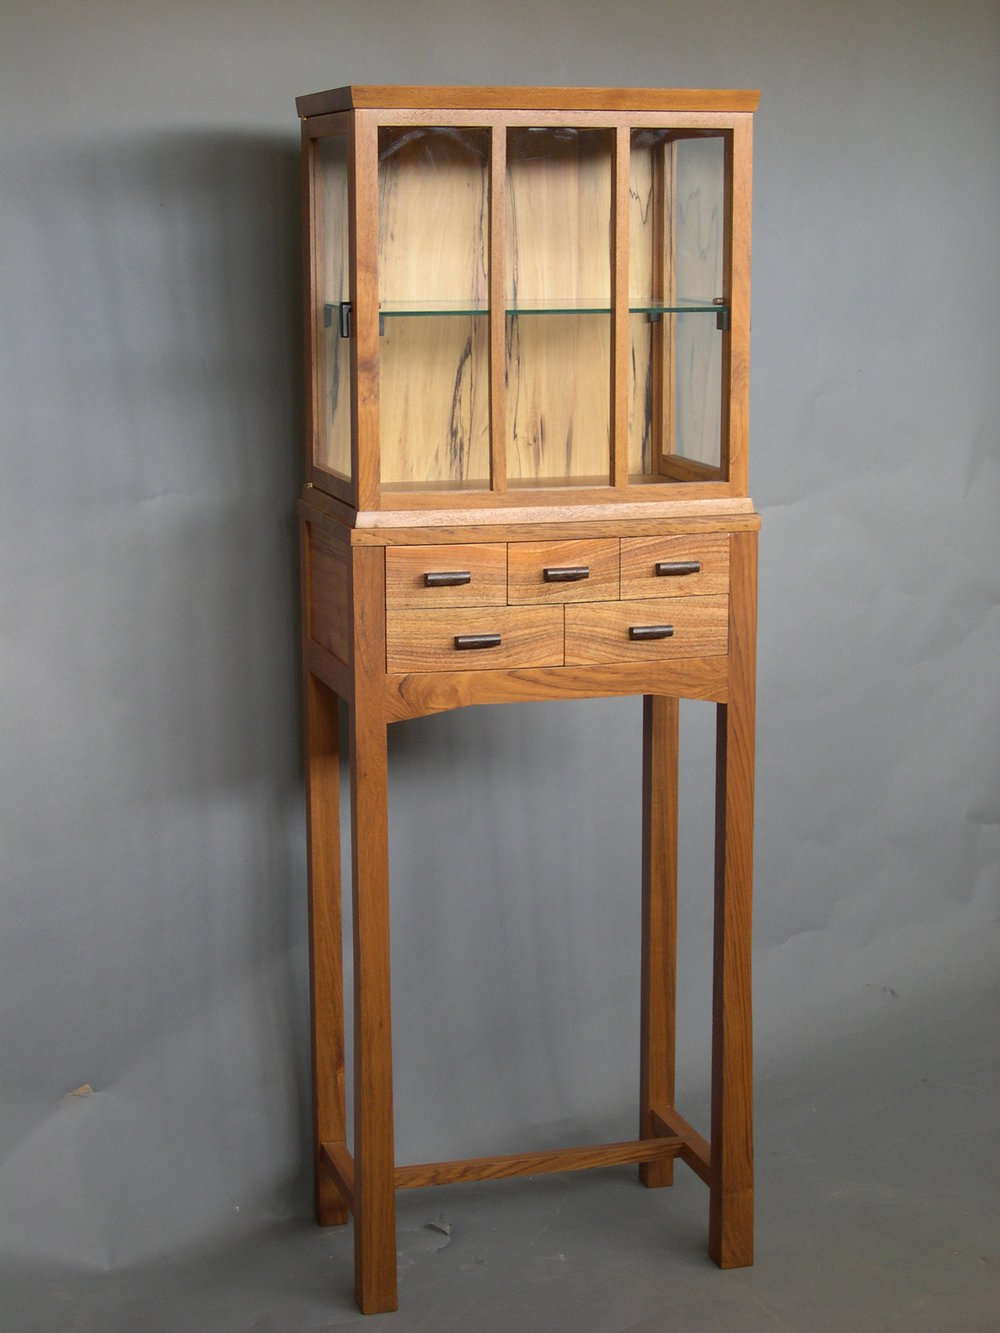 cabinet on stand.jpg